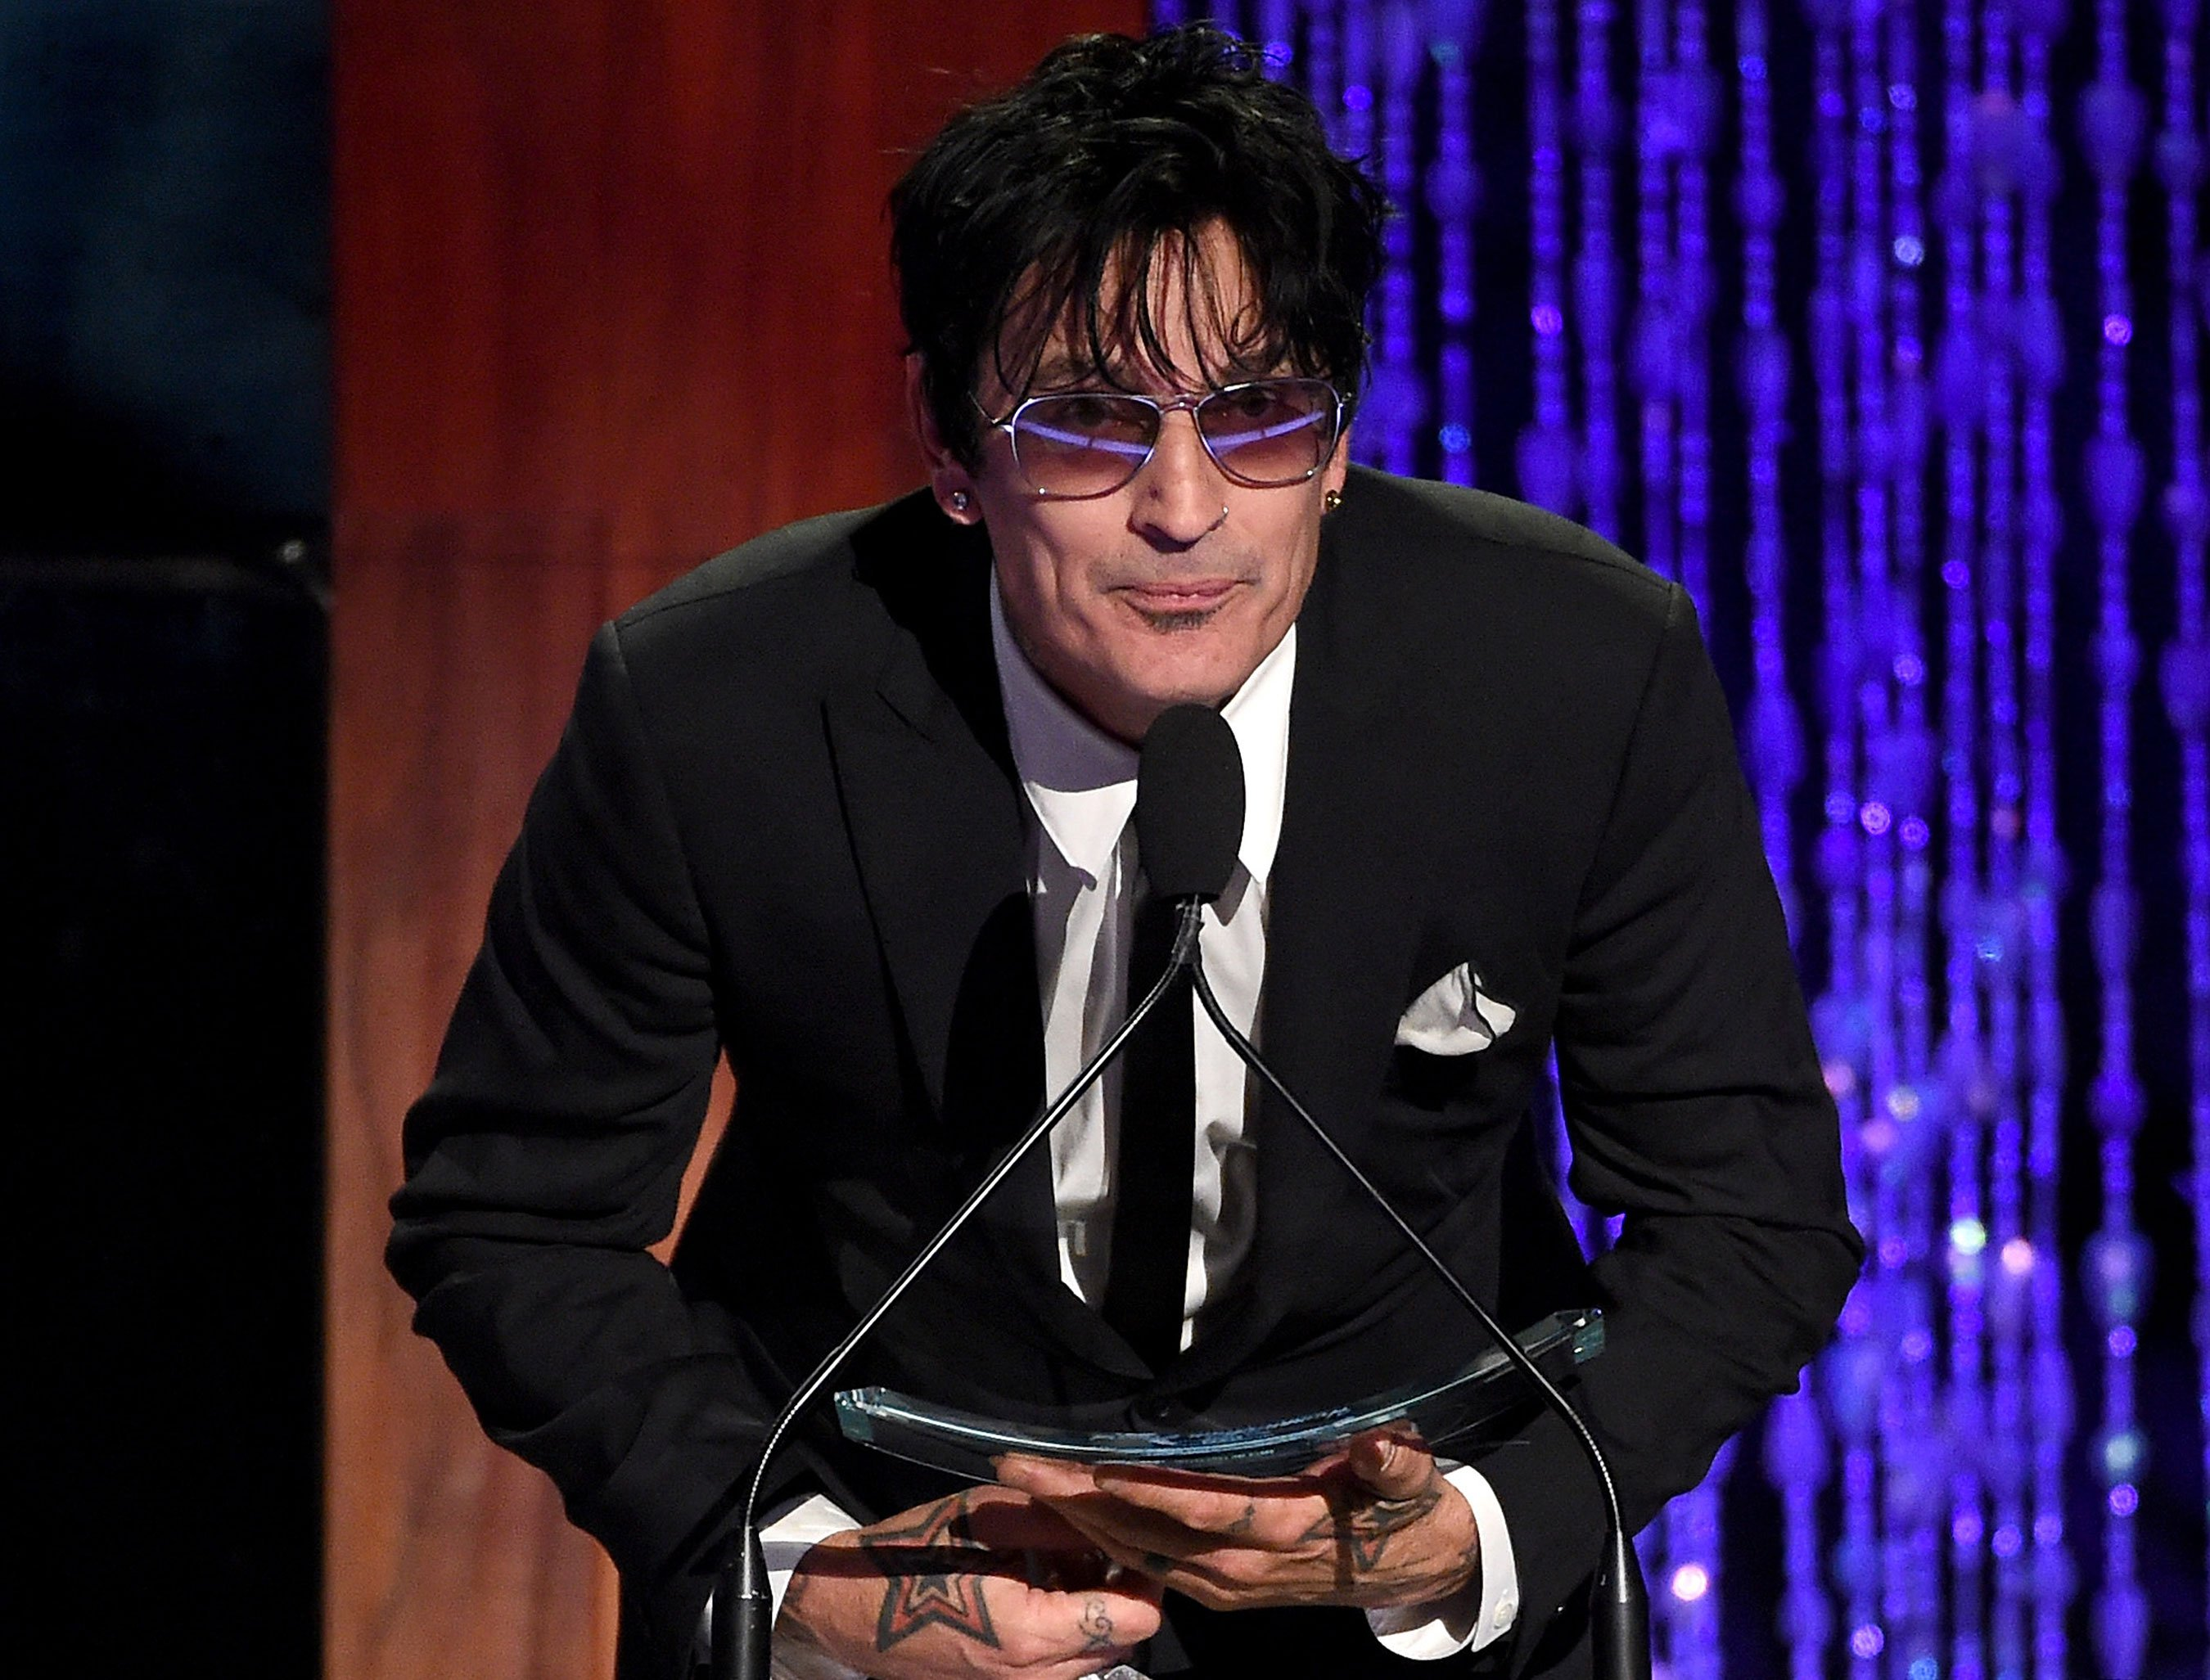 Tommy Lee claims son Brandon assaulted him: 'My heart is broken'